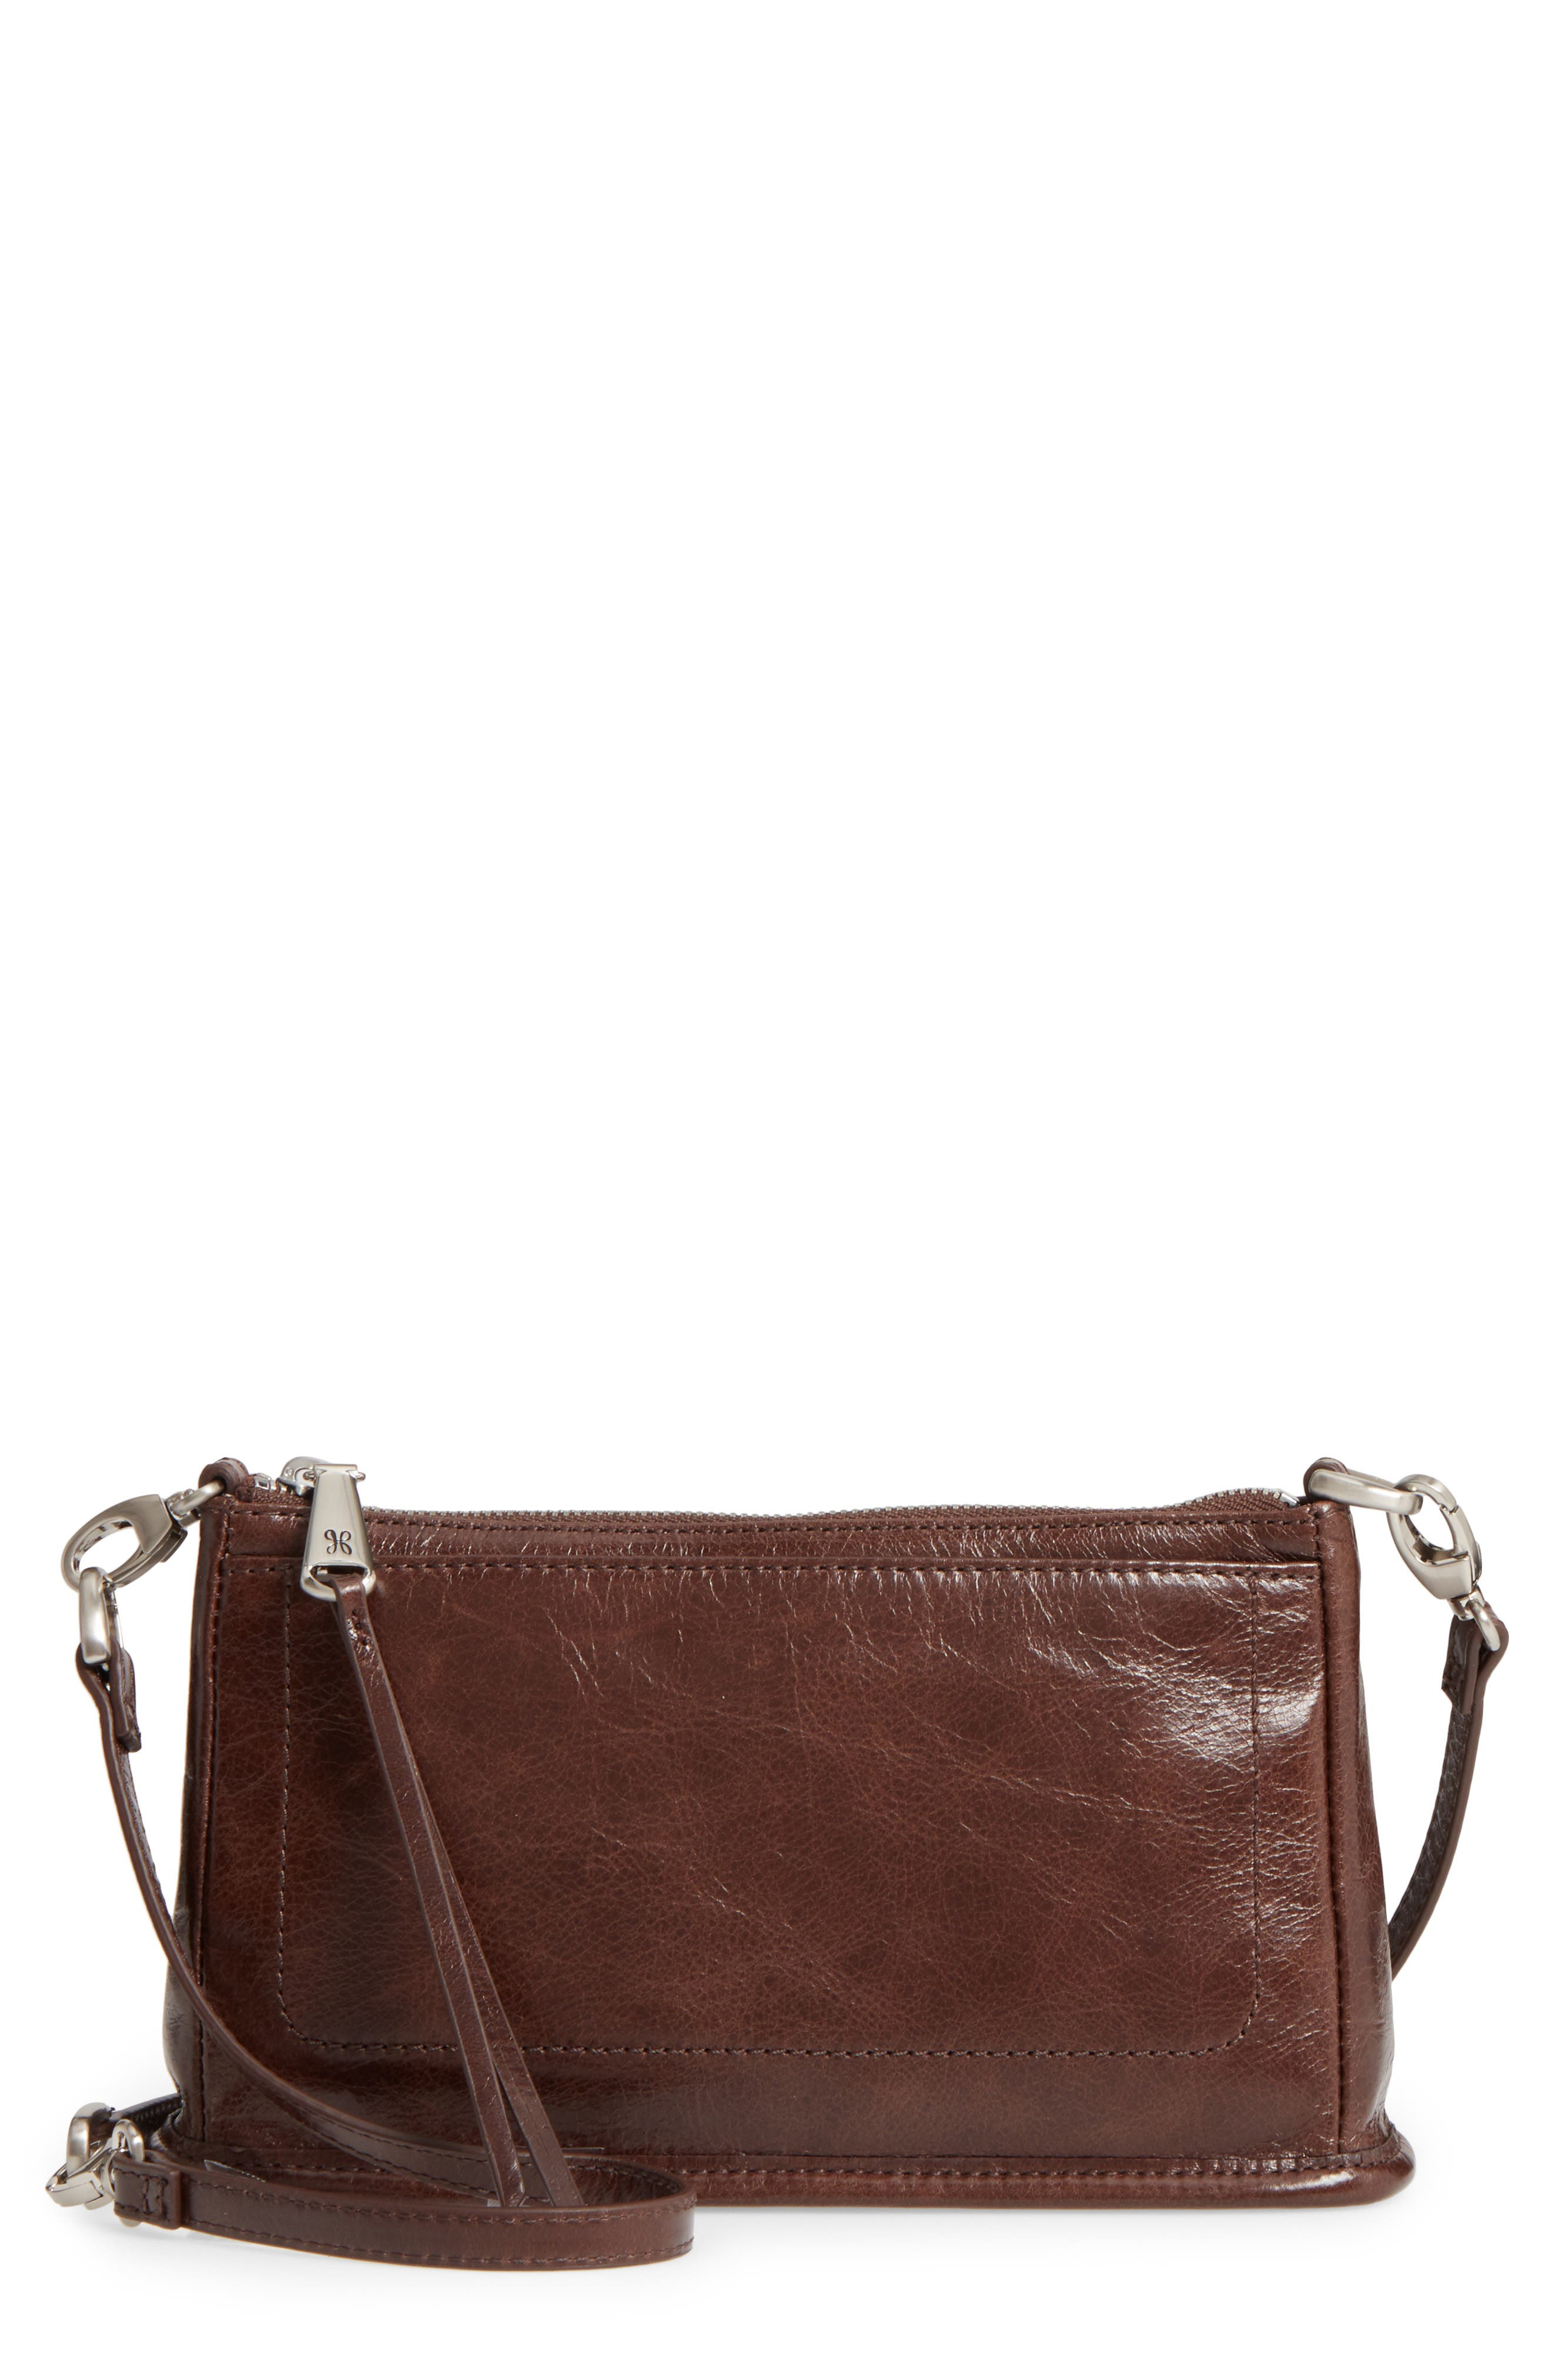 Hobo 'Small Cadence' Leather Crossbody Bag